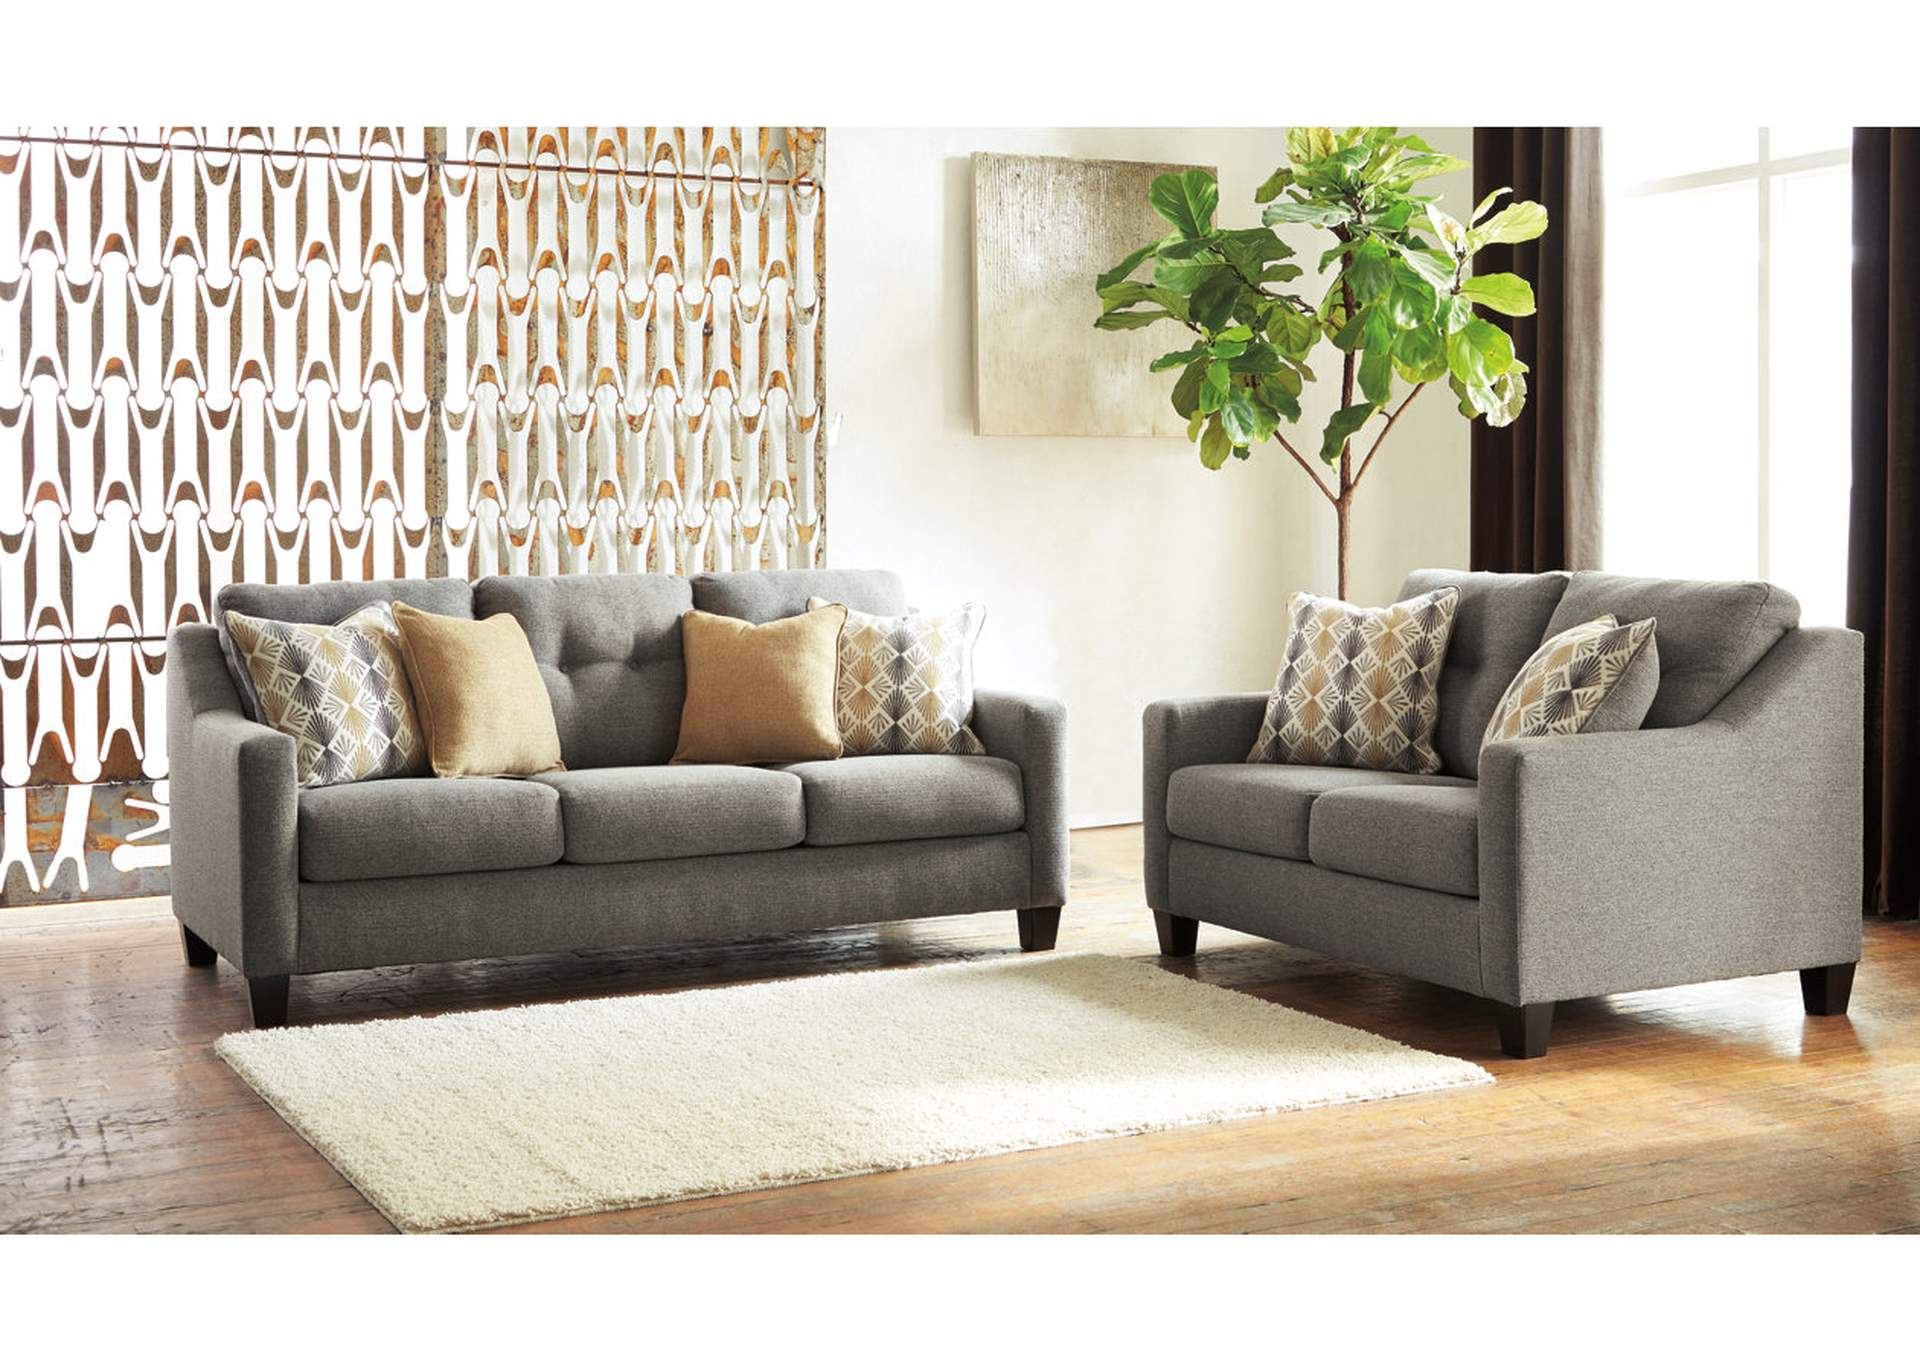 Daylon Graphite Sofa & Loveseat,Benchcraft